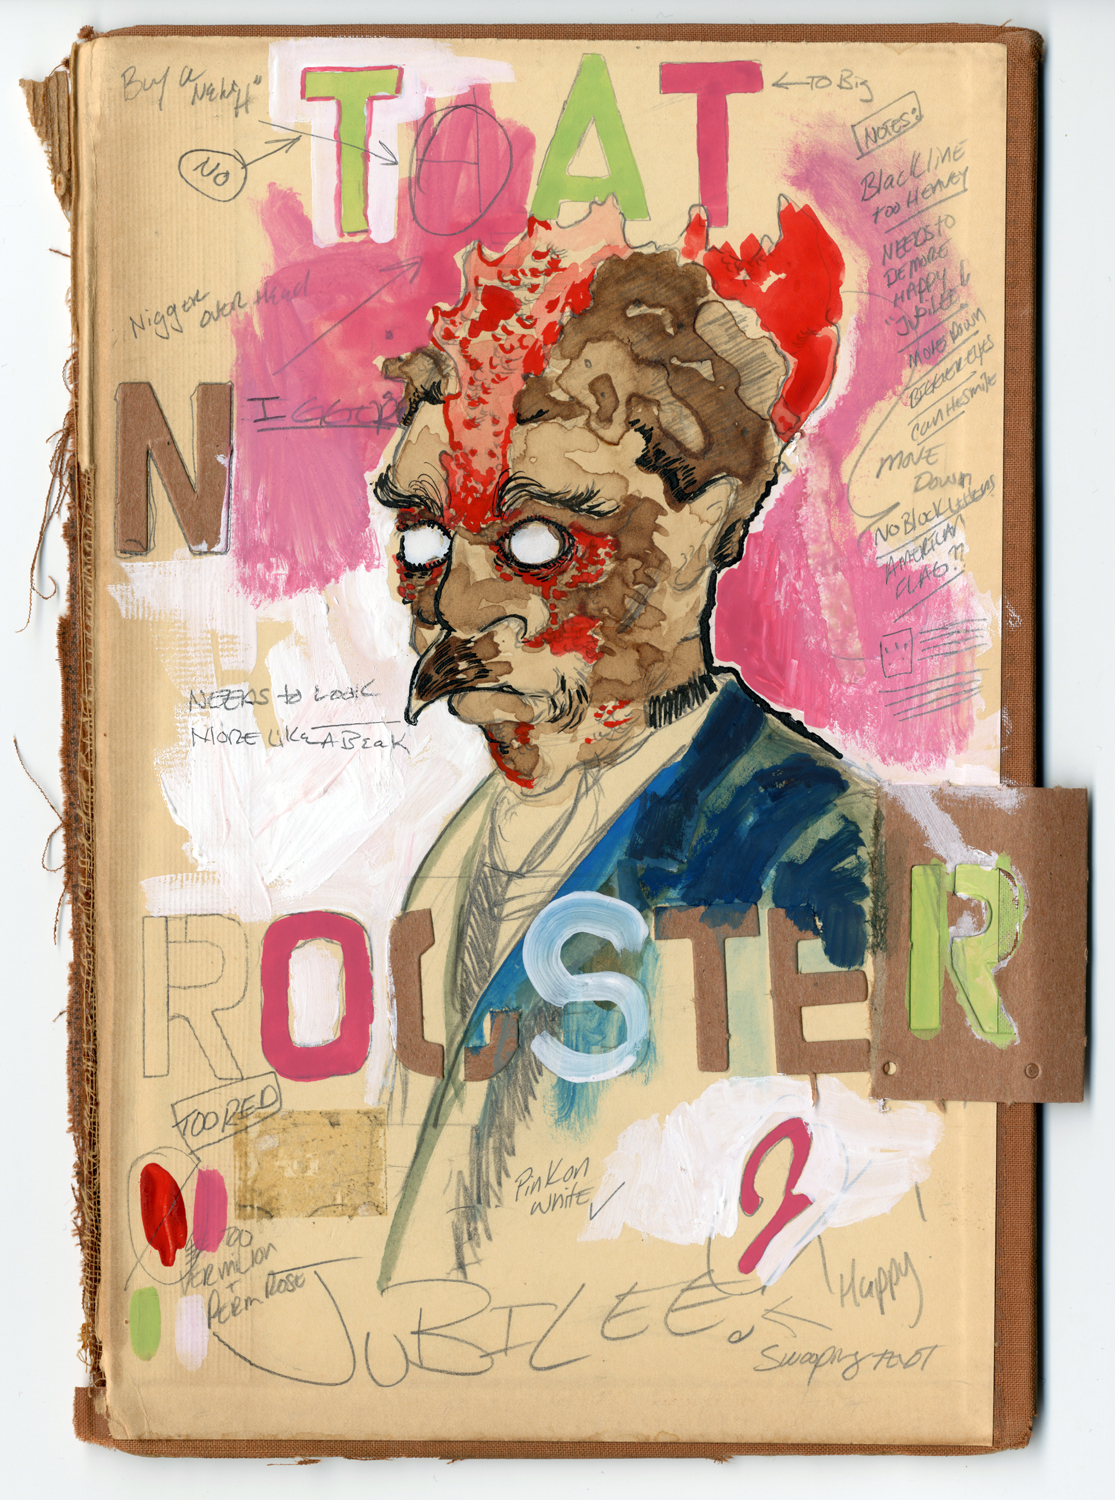 That Nigger Rooster Jubilee!   2013 Mixed media collage, gouache, ink, graphite on book cover 6 x 8.5